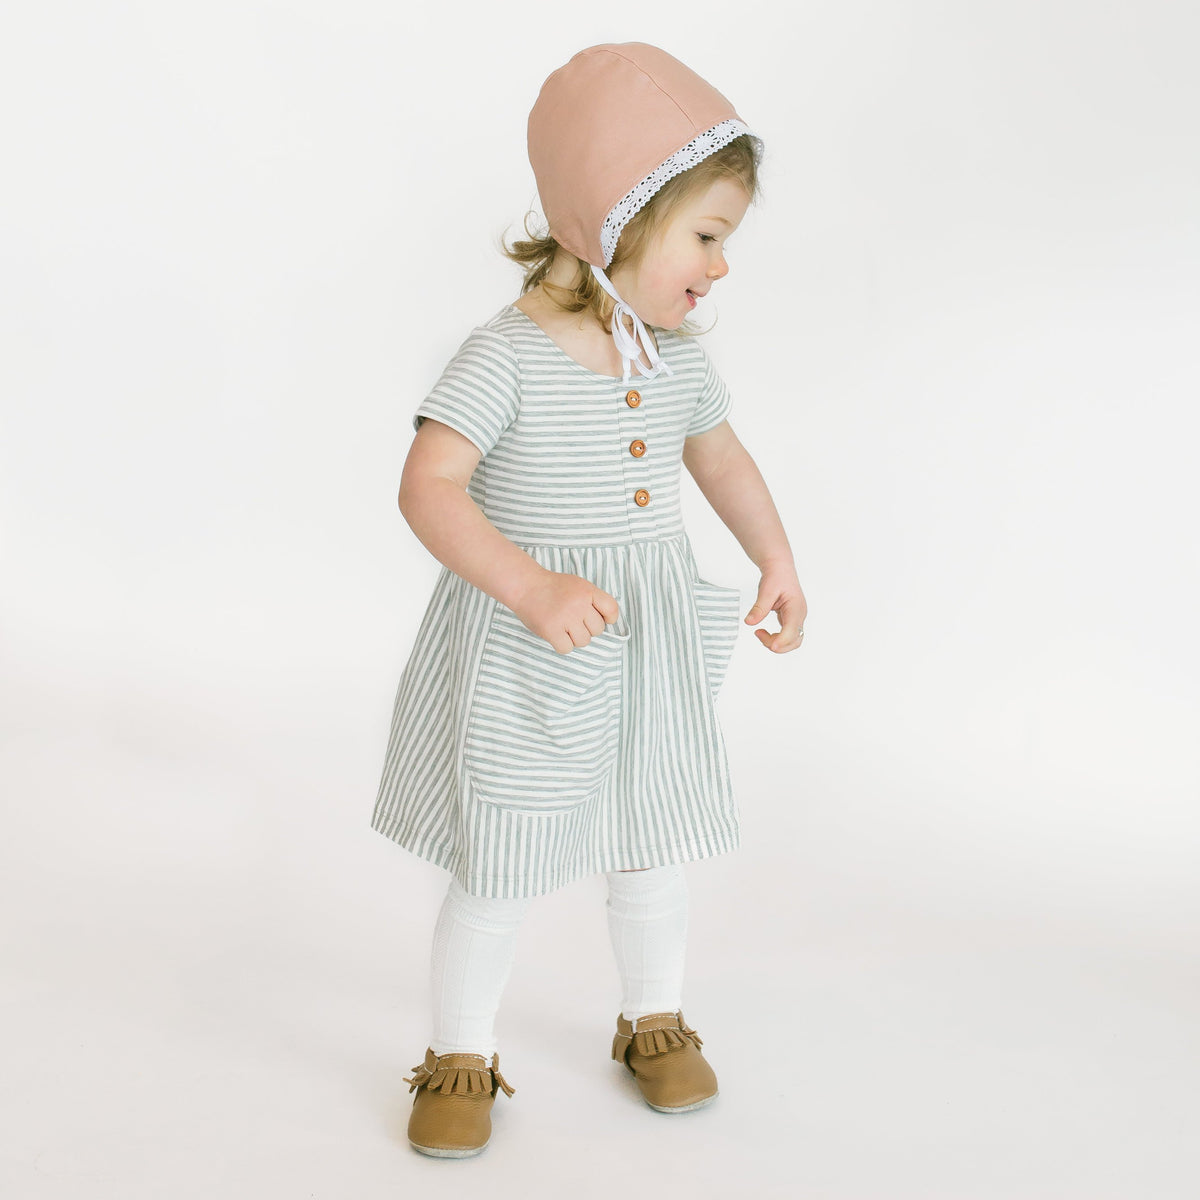 Custom Double Sided Dusty Rose and Gingham Bonnet